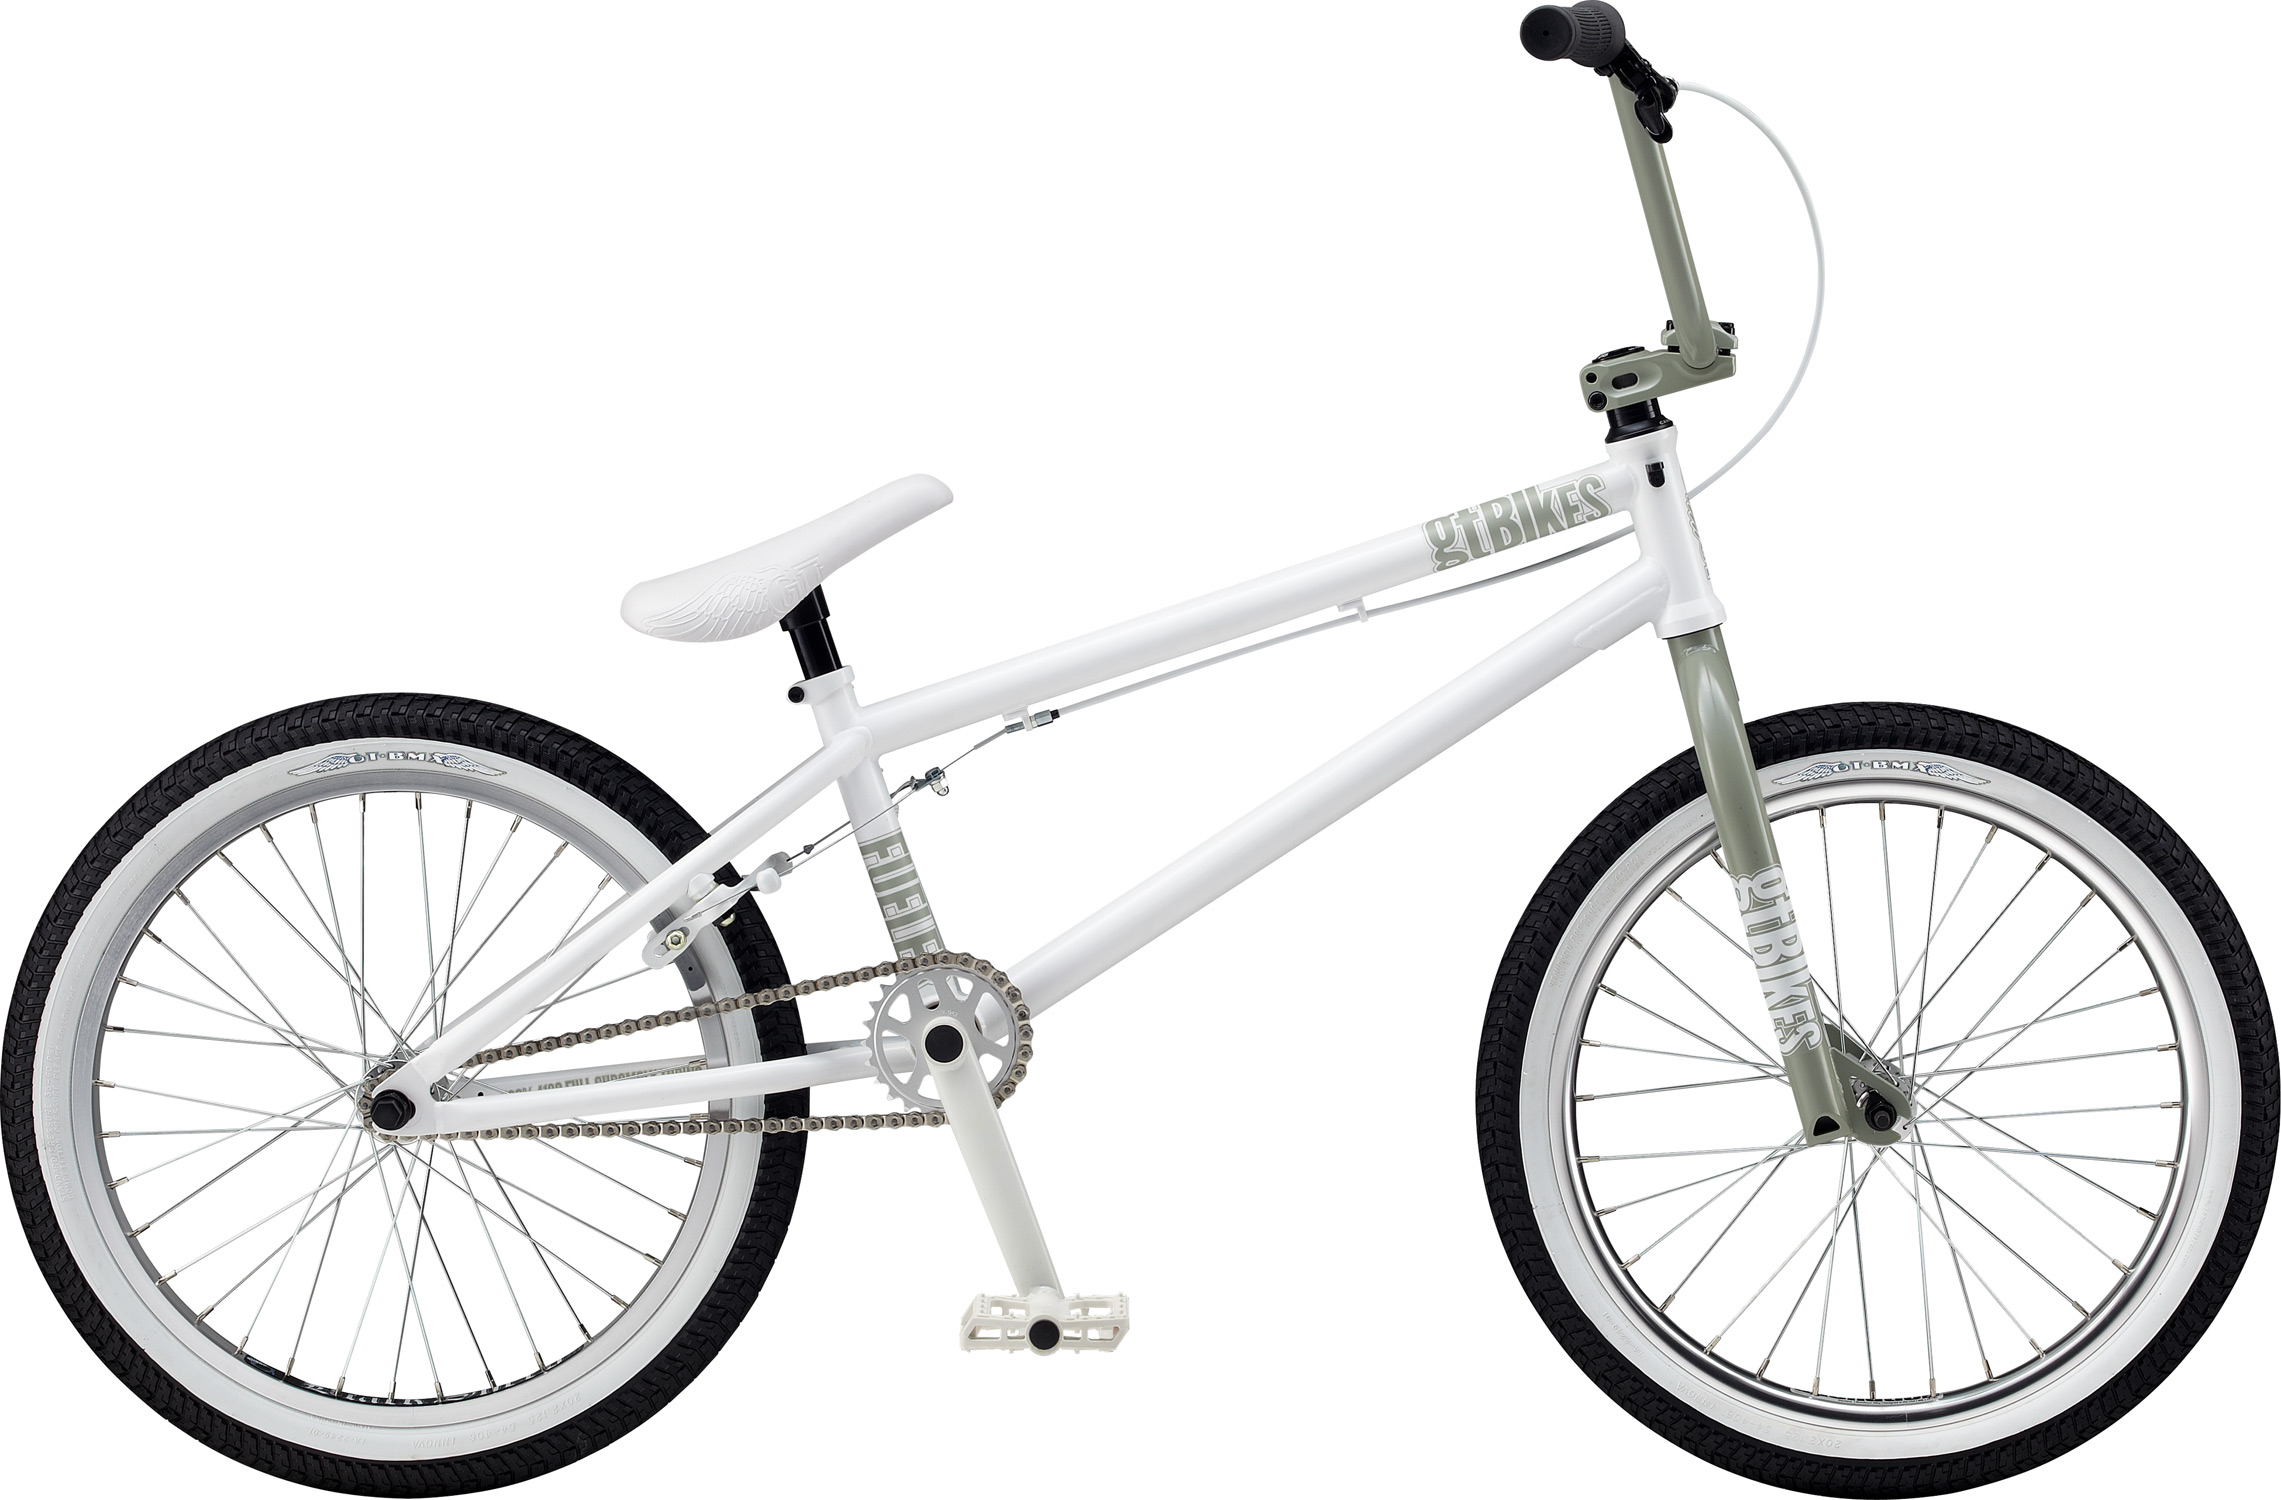 "BMX Key Features of the GT Fueler BMX Bike 20"": Frame: NEW 2012 GT Dirt Design, 100% Cro-Mo Tubes, 1-1/8""120mm Integrated H/T, Mid BB, w/ Removable Rotor And Cable Guides, Removable Brake Bosses, 6mm Cro-Mo Dropouts Front Suspension: GT, 100% Cro-Mo, 31.8-28.6 Taper, 3/8, 1 1/8"" Crankset: GT Cro-Mo 2 Pcs, 48T, 175mm Al 25T Wheels/Hubs: GT AL Mohawk Cassette Sealed 32F, 36R Hole Brakes: Tektro FX720R - $439.99"